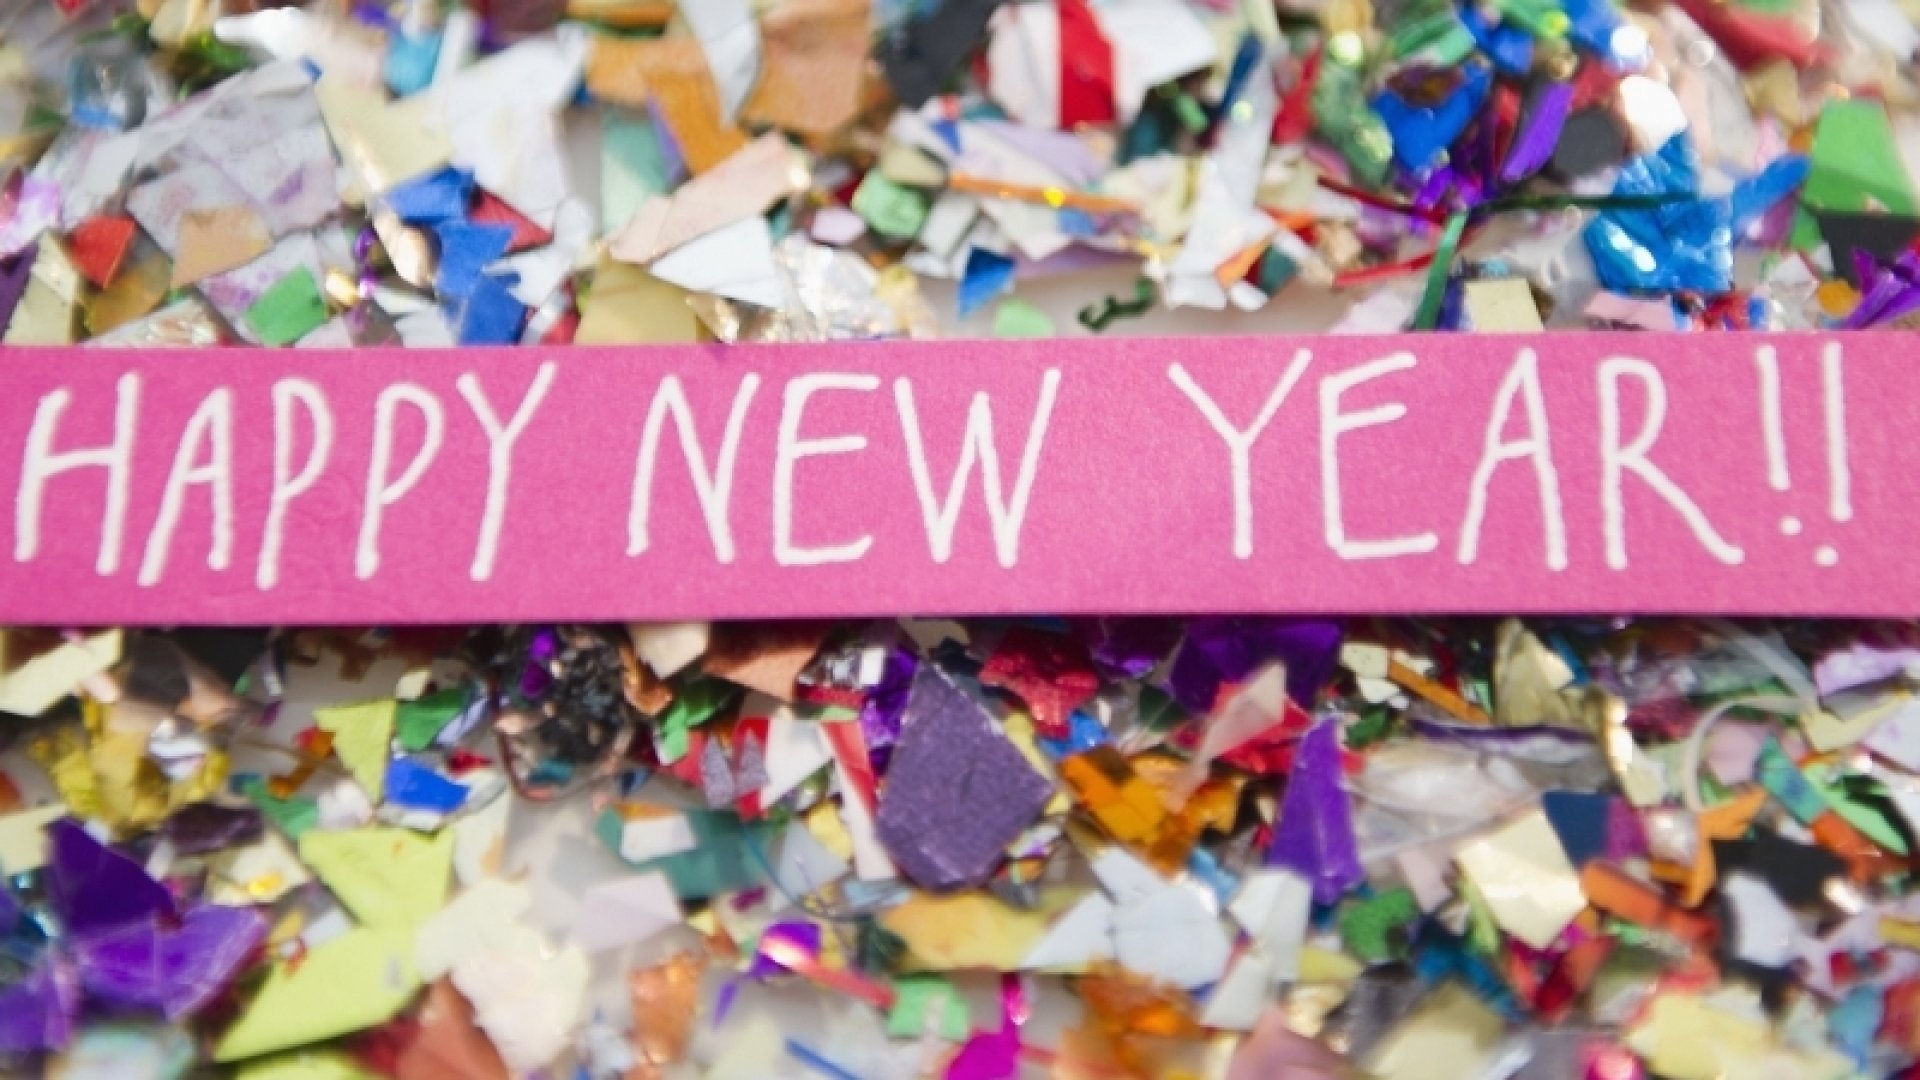 The 1 New Year's Resolution That Can Change Everything